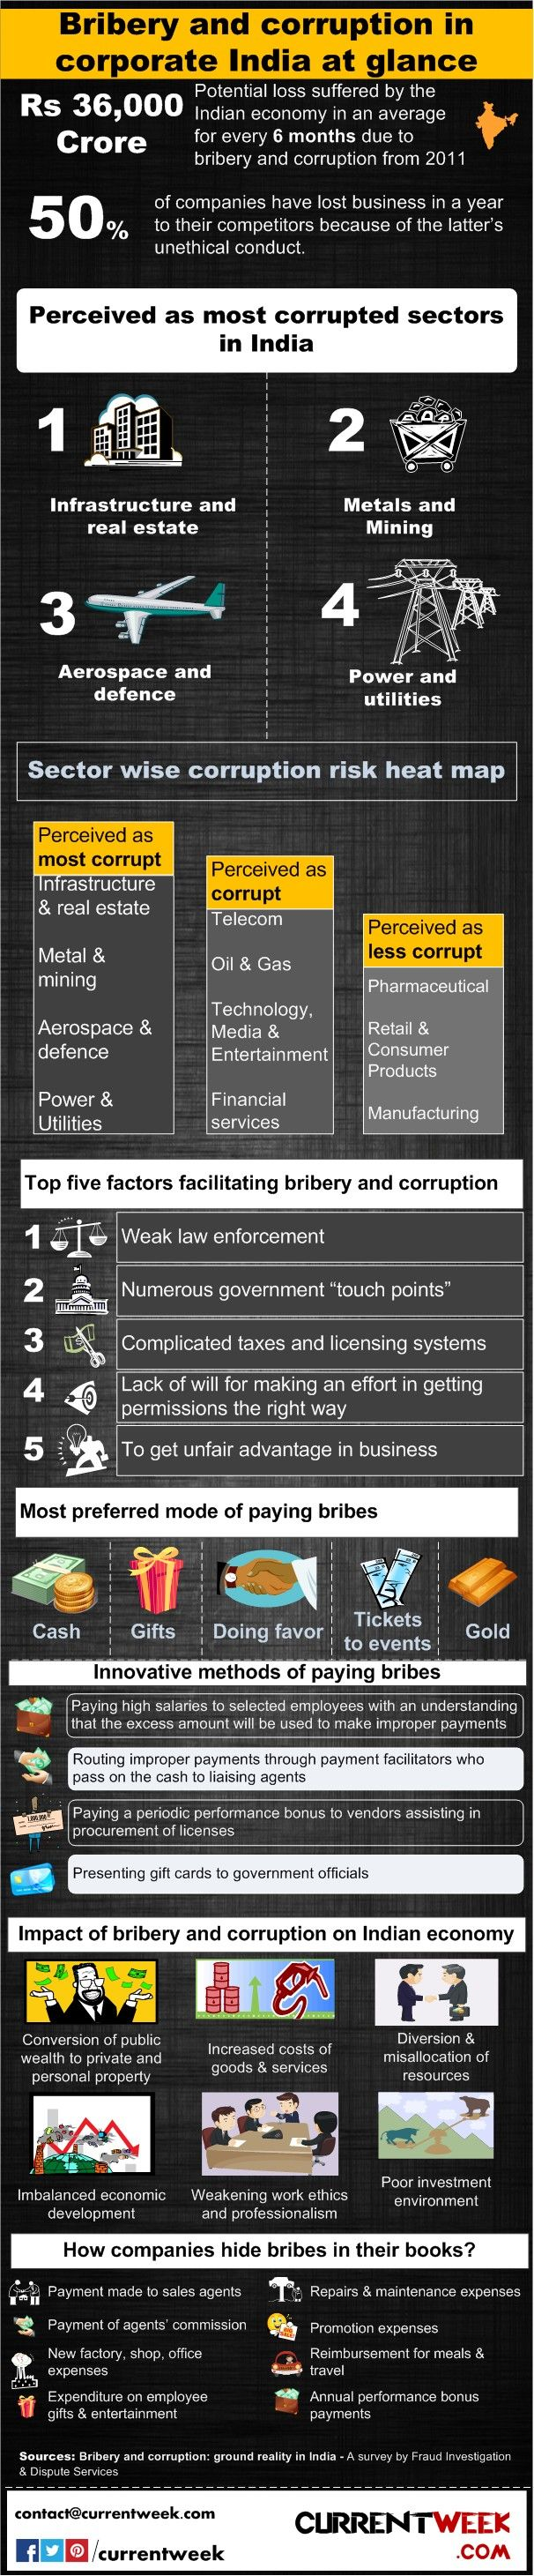 Bribery and corruption in India. Politics vs corporates - Facts in Infographic